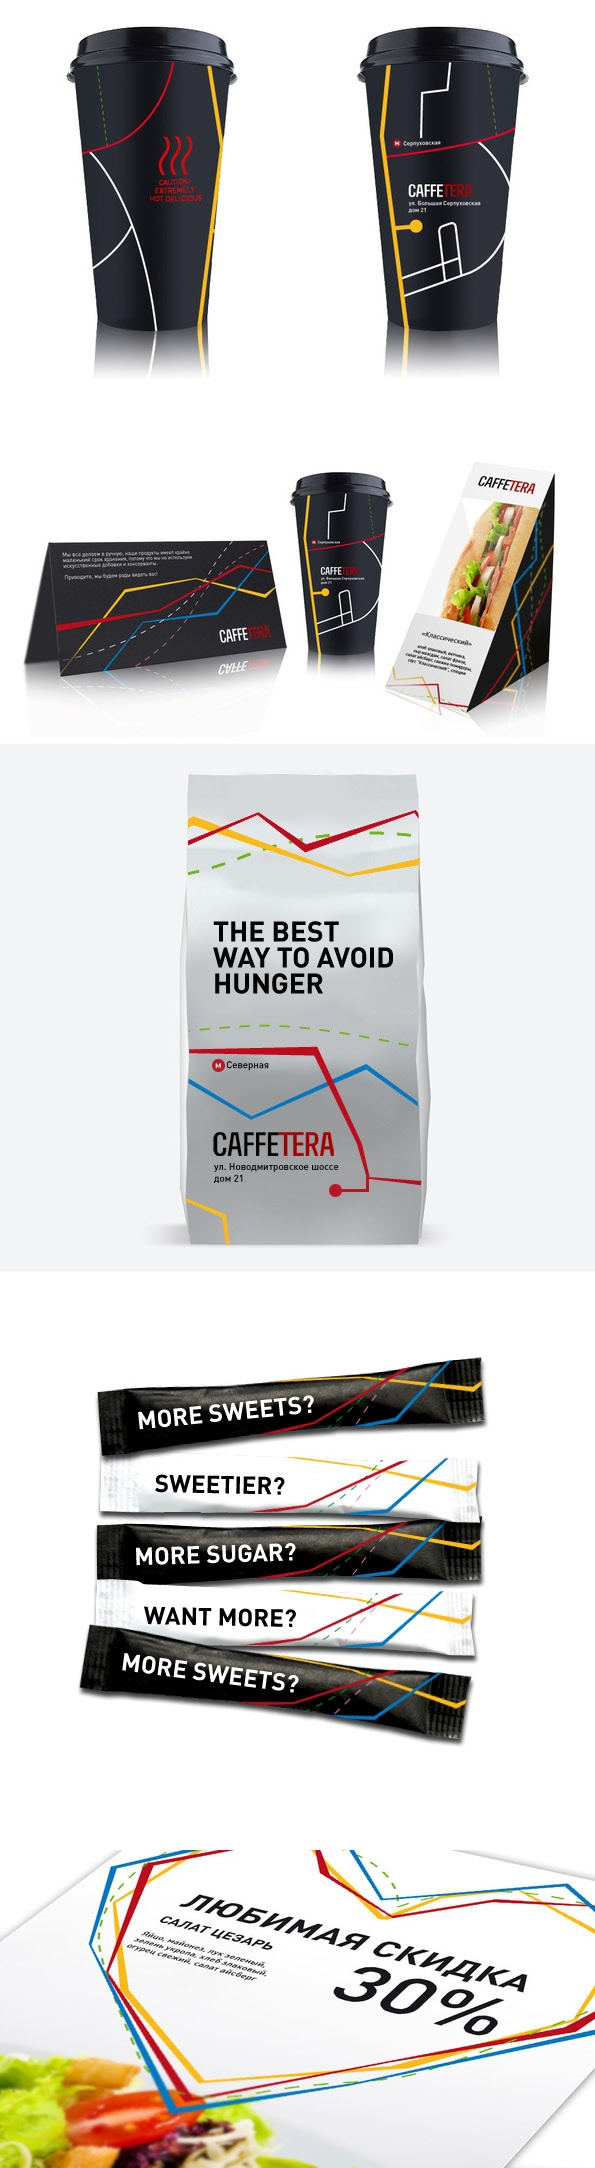 CAFFETERA lunchtime #packaging #branding PD